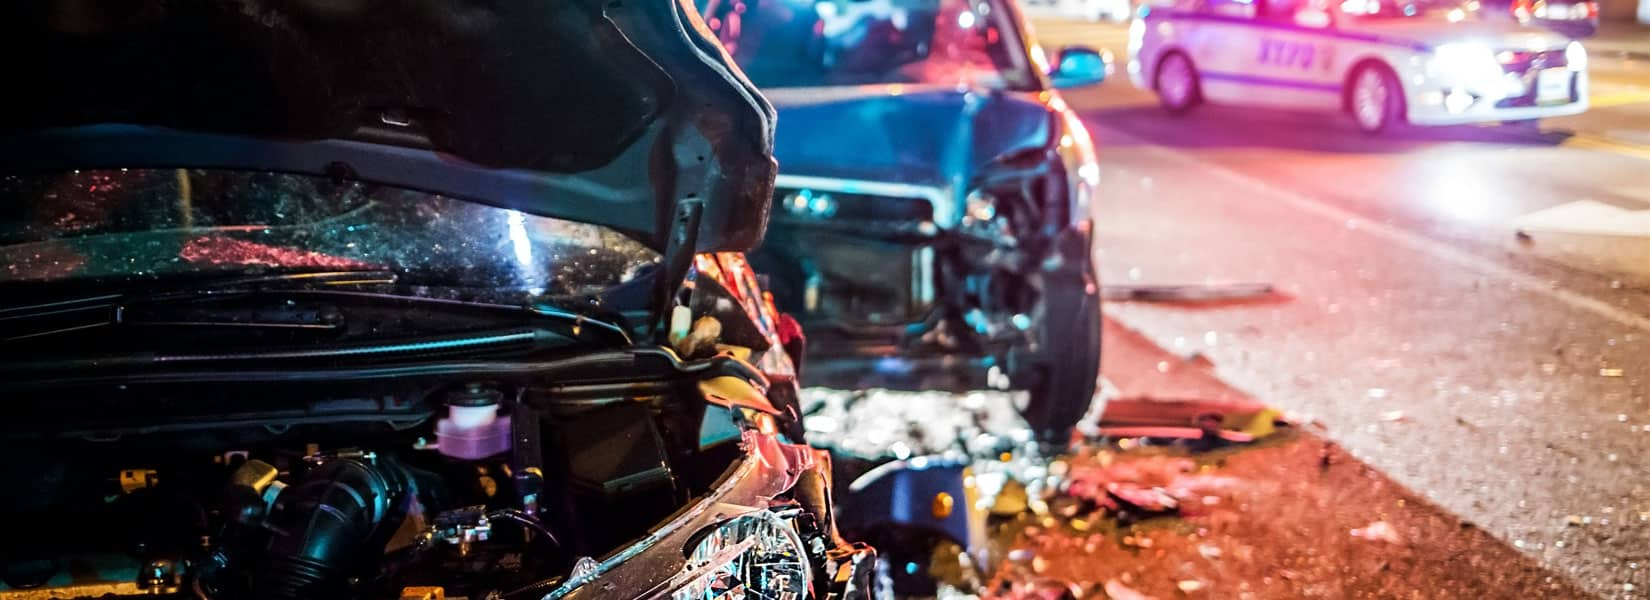 Common Types of Injuries Peoria Car Accident Lawyers May Seek Compensation For